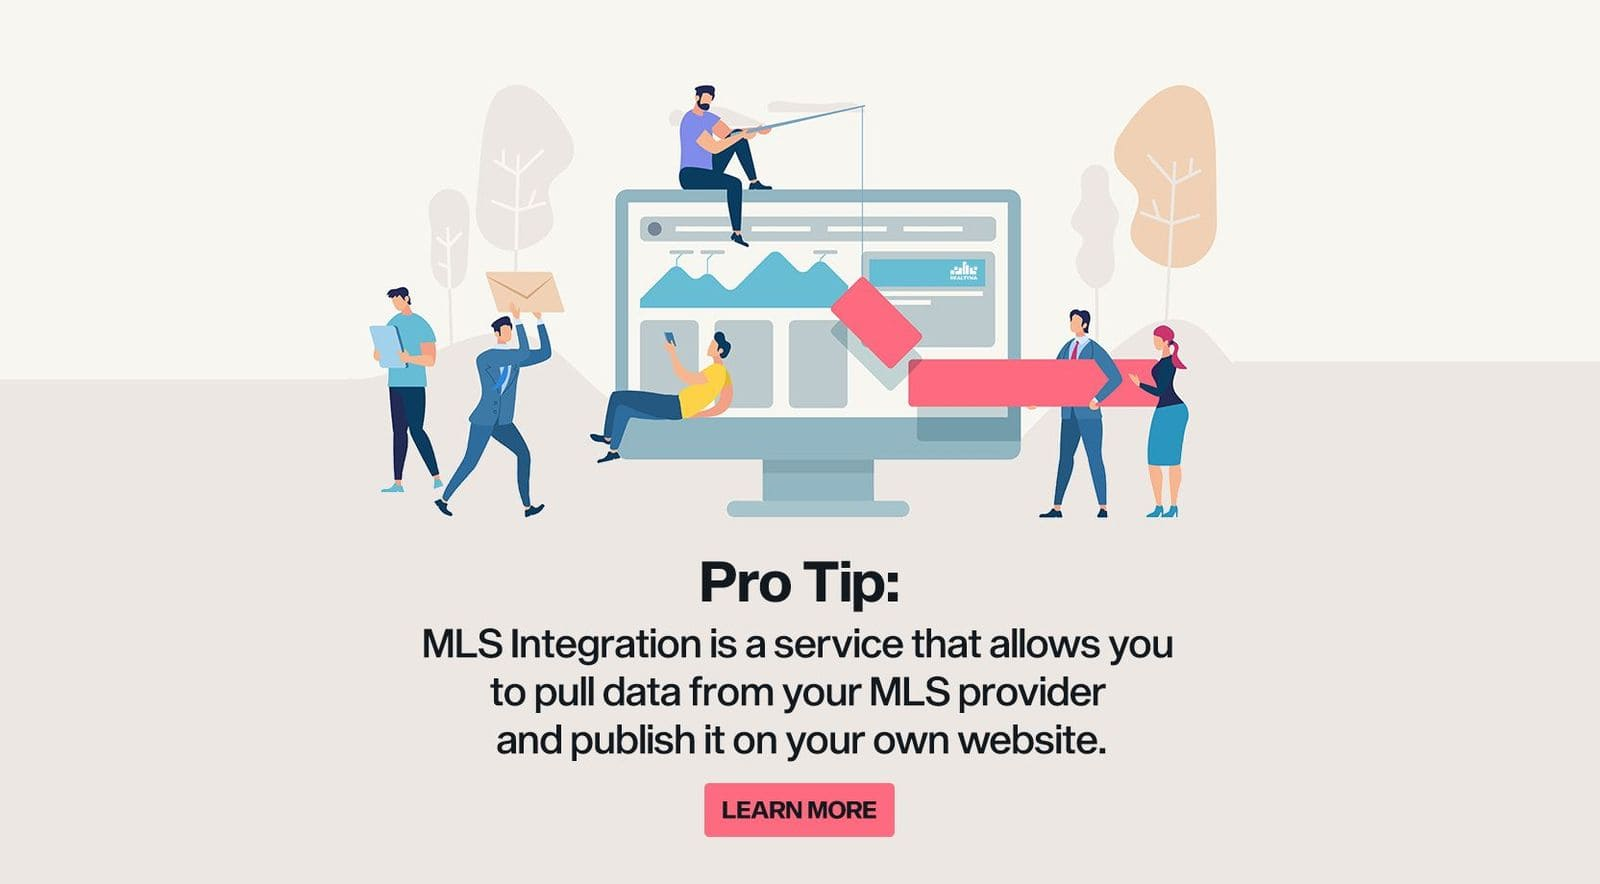 MLS Integration